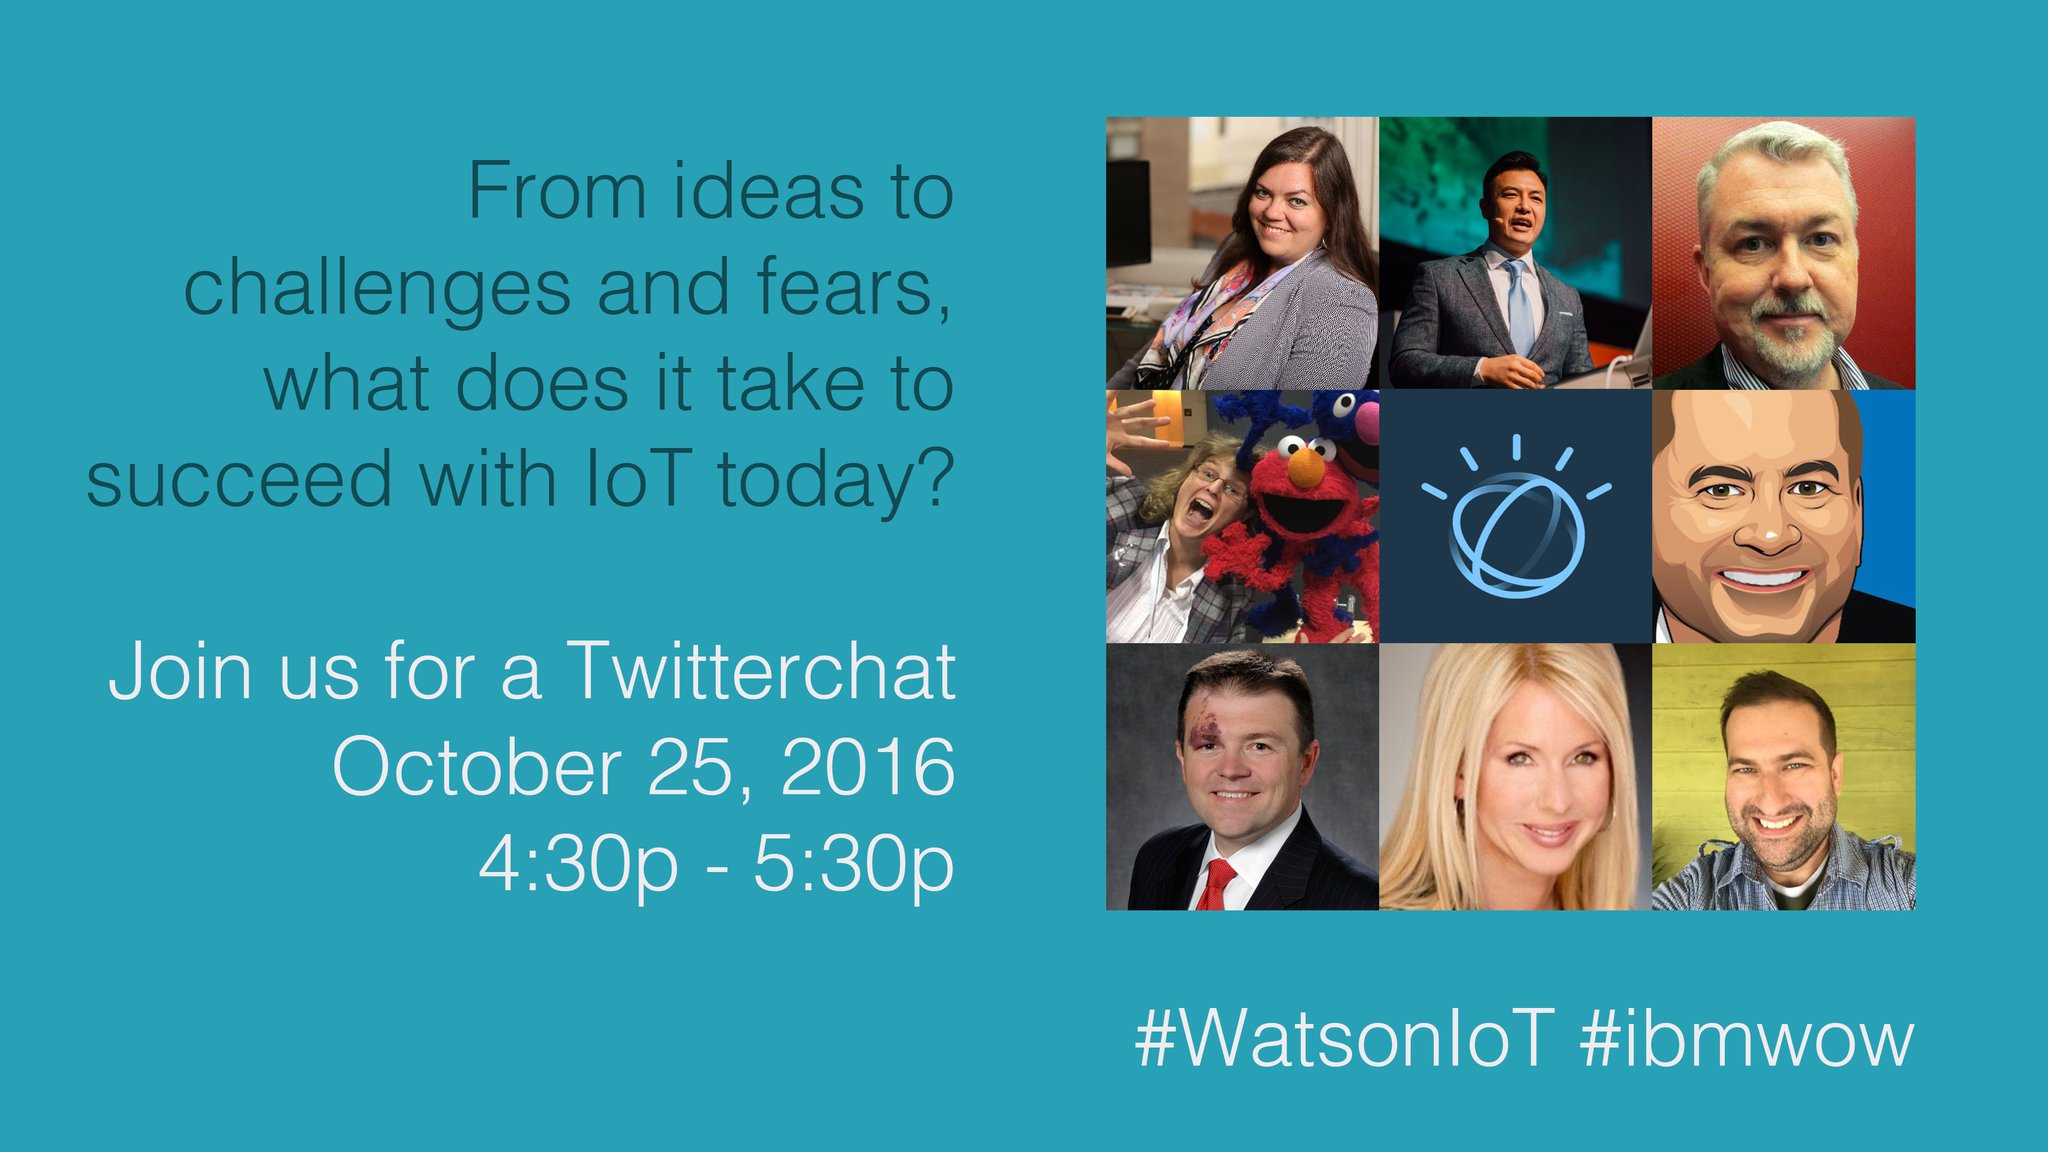 Are you wondering how to overcome the fear of #IoT? Join us for a Twitterchat today at 4:30 PST #WatsonIoT #ibmwow https://t.co/tkqwpdt4F7